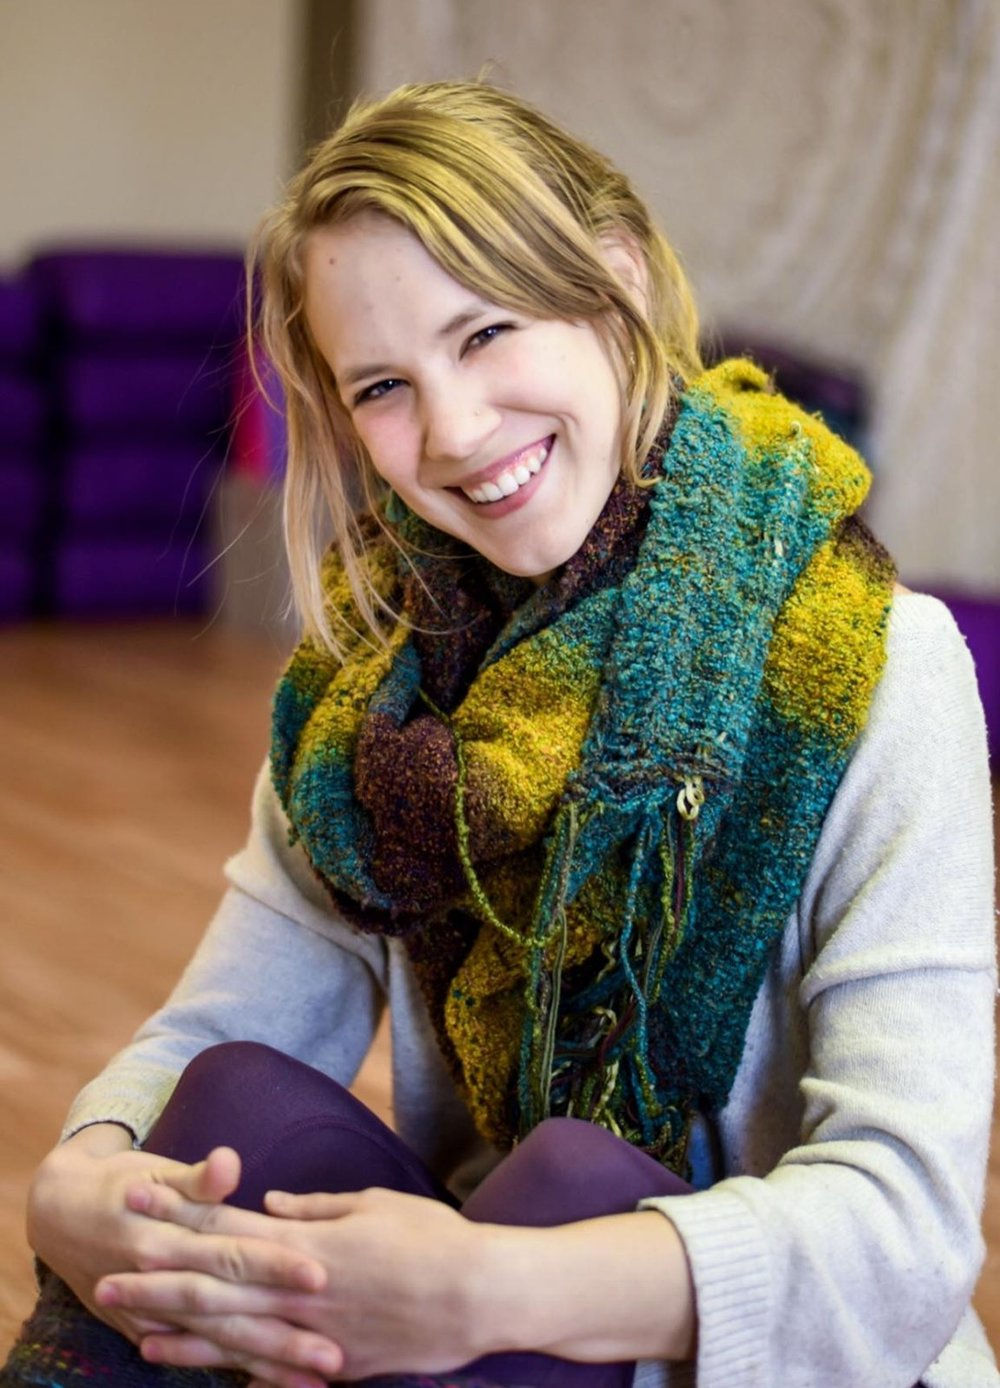 Lead Coach Kenna Tuggle  Coach Kenna Tuggle, also known as Duke, Dragonfae, and K-Tugs, is a Life Coach, Forrest Yoga Teacher, Bodyworker, Creative Writer, Violinist, and Supreme Lover of Tea.   Kenna is a Colorado girl with an endless love of travelling the world and experiencing new places, thinking of about new ideas, and meeting new people. Born and raised in Boulder, CO she now lives in the shadow of the Great Sand Dunes in Alamosa, CO.   Her areas of expertise: Helping people fully embody themselves and FEEL their feelings.   Her super power: She is a compassionate and powerful space holder, and a gold nugget of truth EXCAVATOR  Her Gifts: She is a fierce coach who enables her clients to set themselves free through deep and compassionate self-exploration! She loves exploration of internal universes (her own, guiding others, on hikes, while drinking tea, in mountains, in deserts, in cities, on the beach... wherever, whoever, whatever: let's explore!)   Her Secret Weapon: Her laugh/ roar/ ability to shake in a freeing and comfortable way in yoga! ALSO SHE LITERALLY GIVES THE MOST AMAZING HUGS. IF YOU EVER SEE HER IN PERSON AND YOU WANT A WHOLESOME, NURTURING HUG, SIMPLY SAY THE WORD!